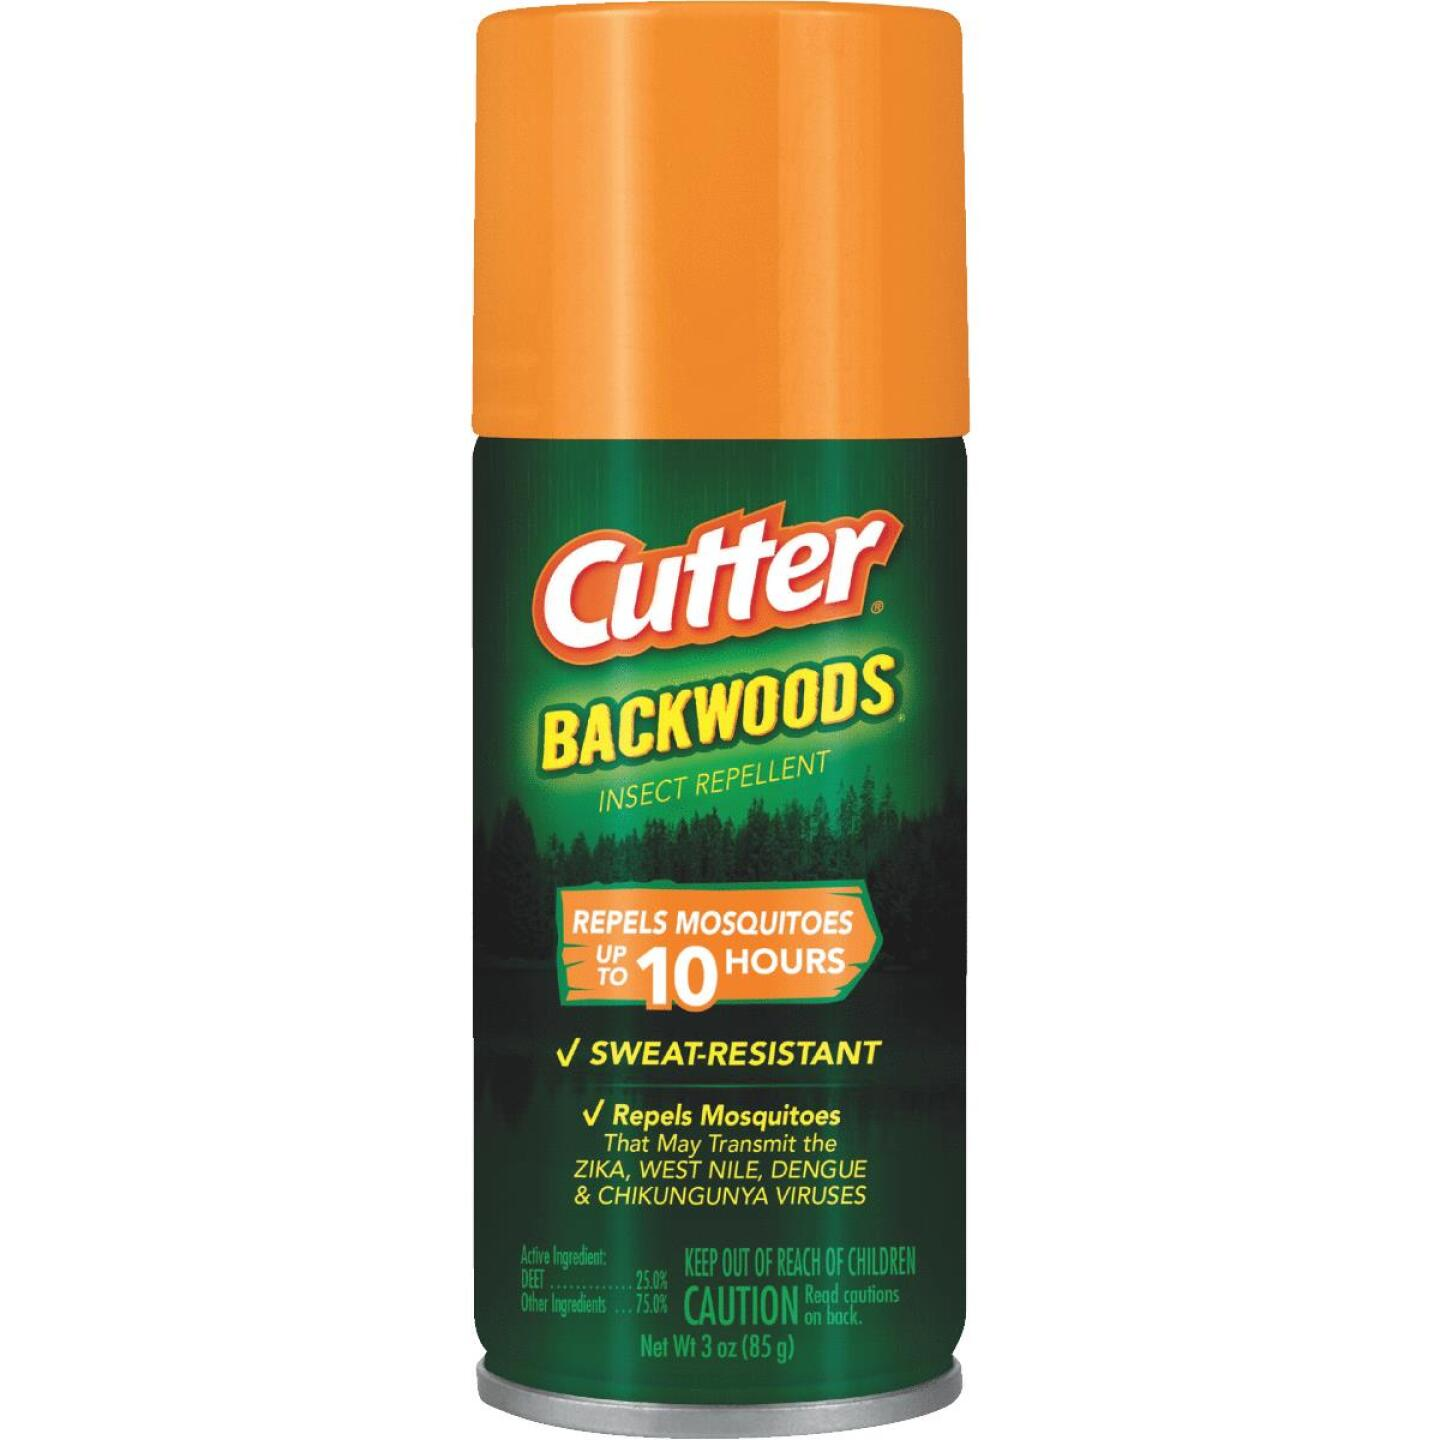 Cutter Backwoods 3 Oz. Travel Size Insect Repellent Aerosol Spray Image 1